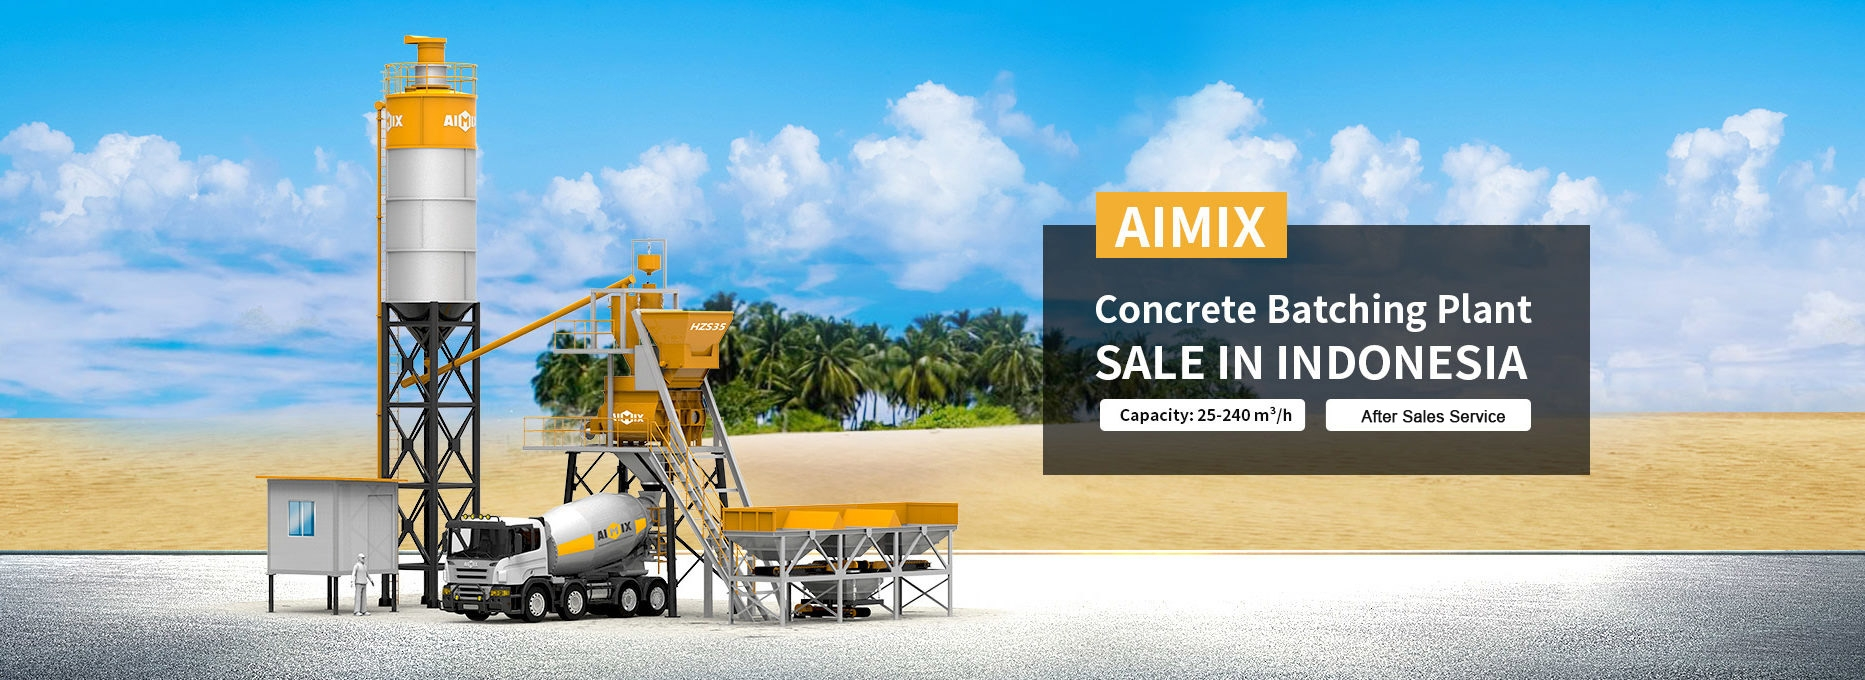 AIMIX batching plant in Indonesia